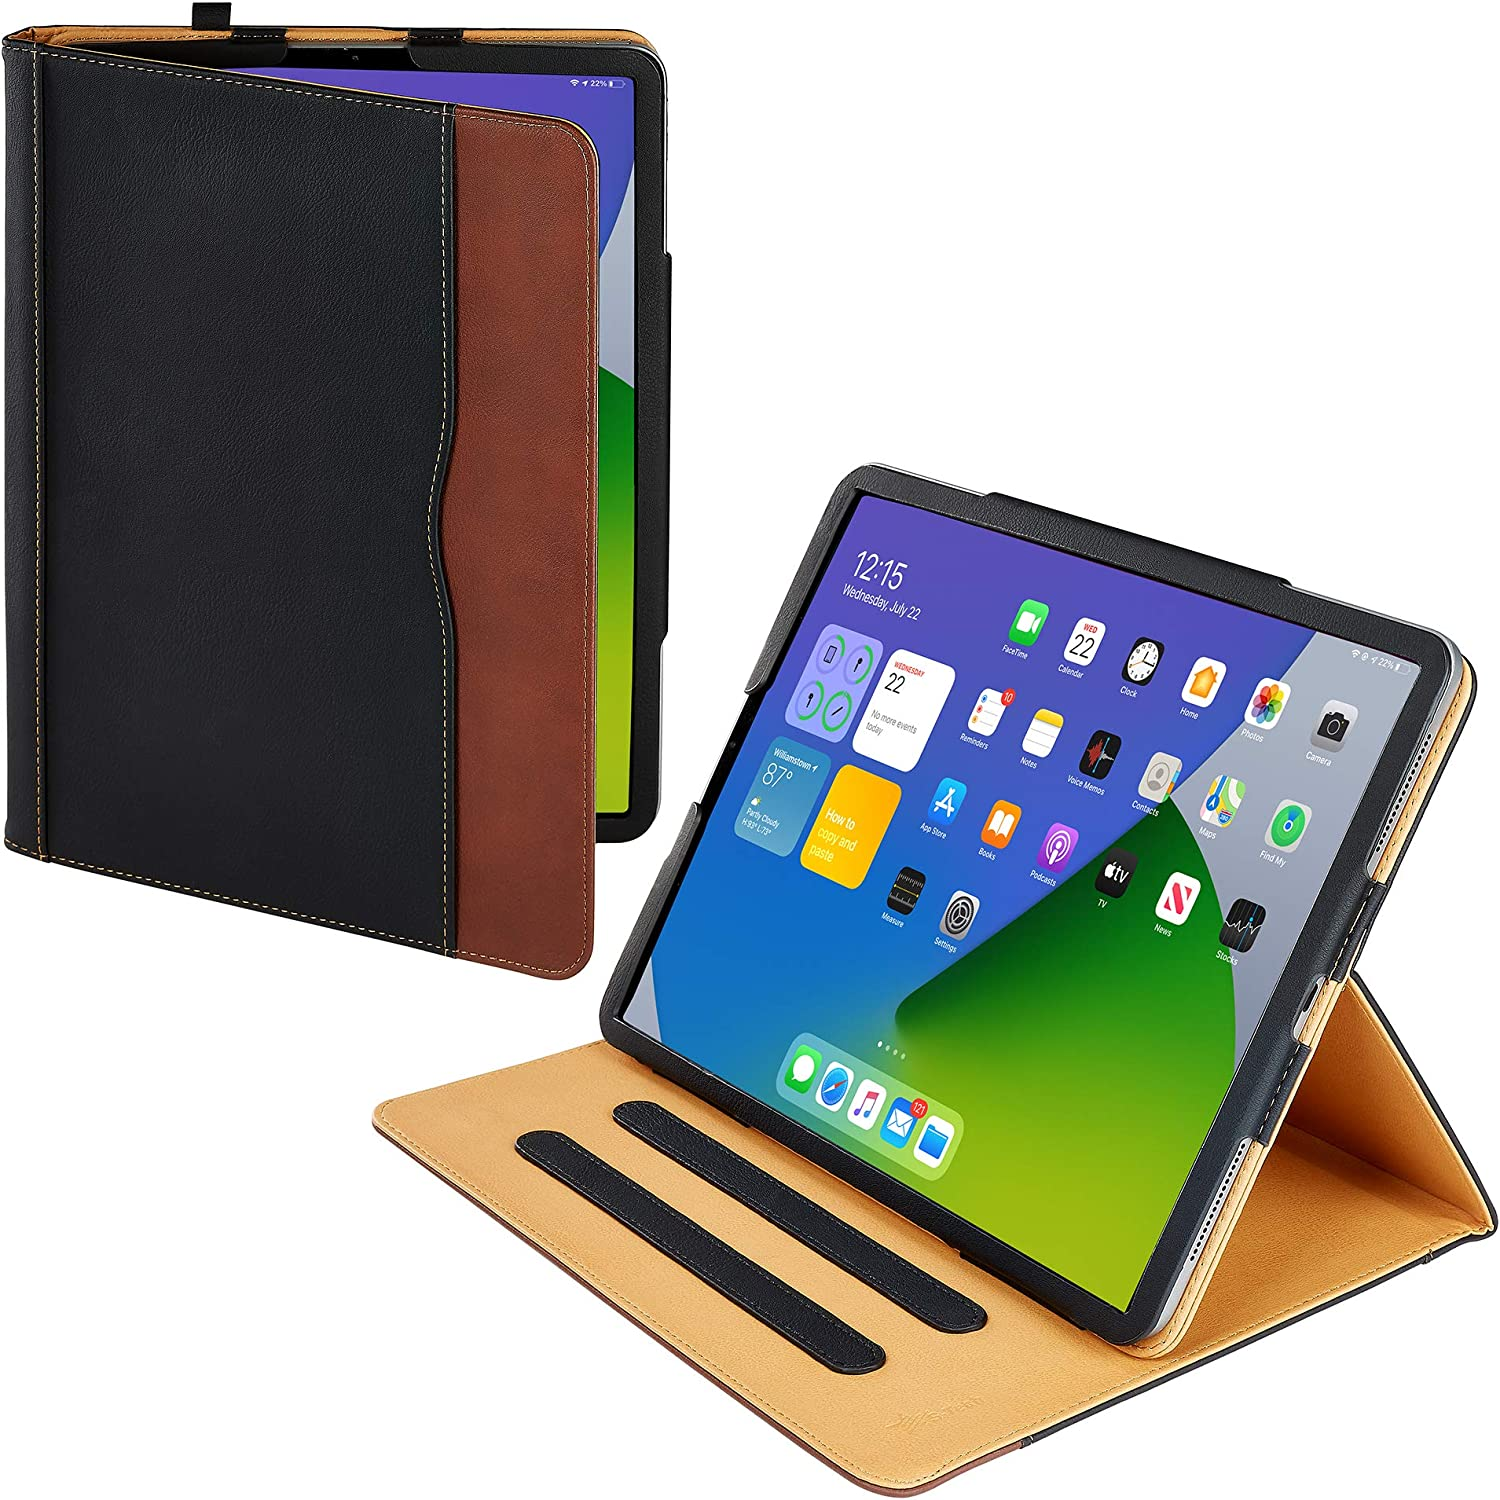 S-Tech Apple iPad Pro 12.9 3RD Generation ONLY 2018 Soft Leather Wallet Magnetic Smart Cover with Sleep/Wake Feature Flip Folio (Pro 12.9 3rd Gen 2018 Models A1876 A1983 A1895 A2014) (Black and Tan)